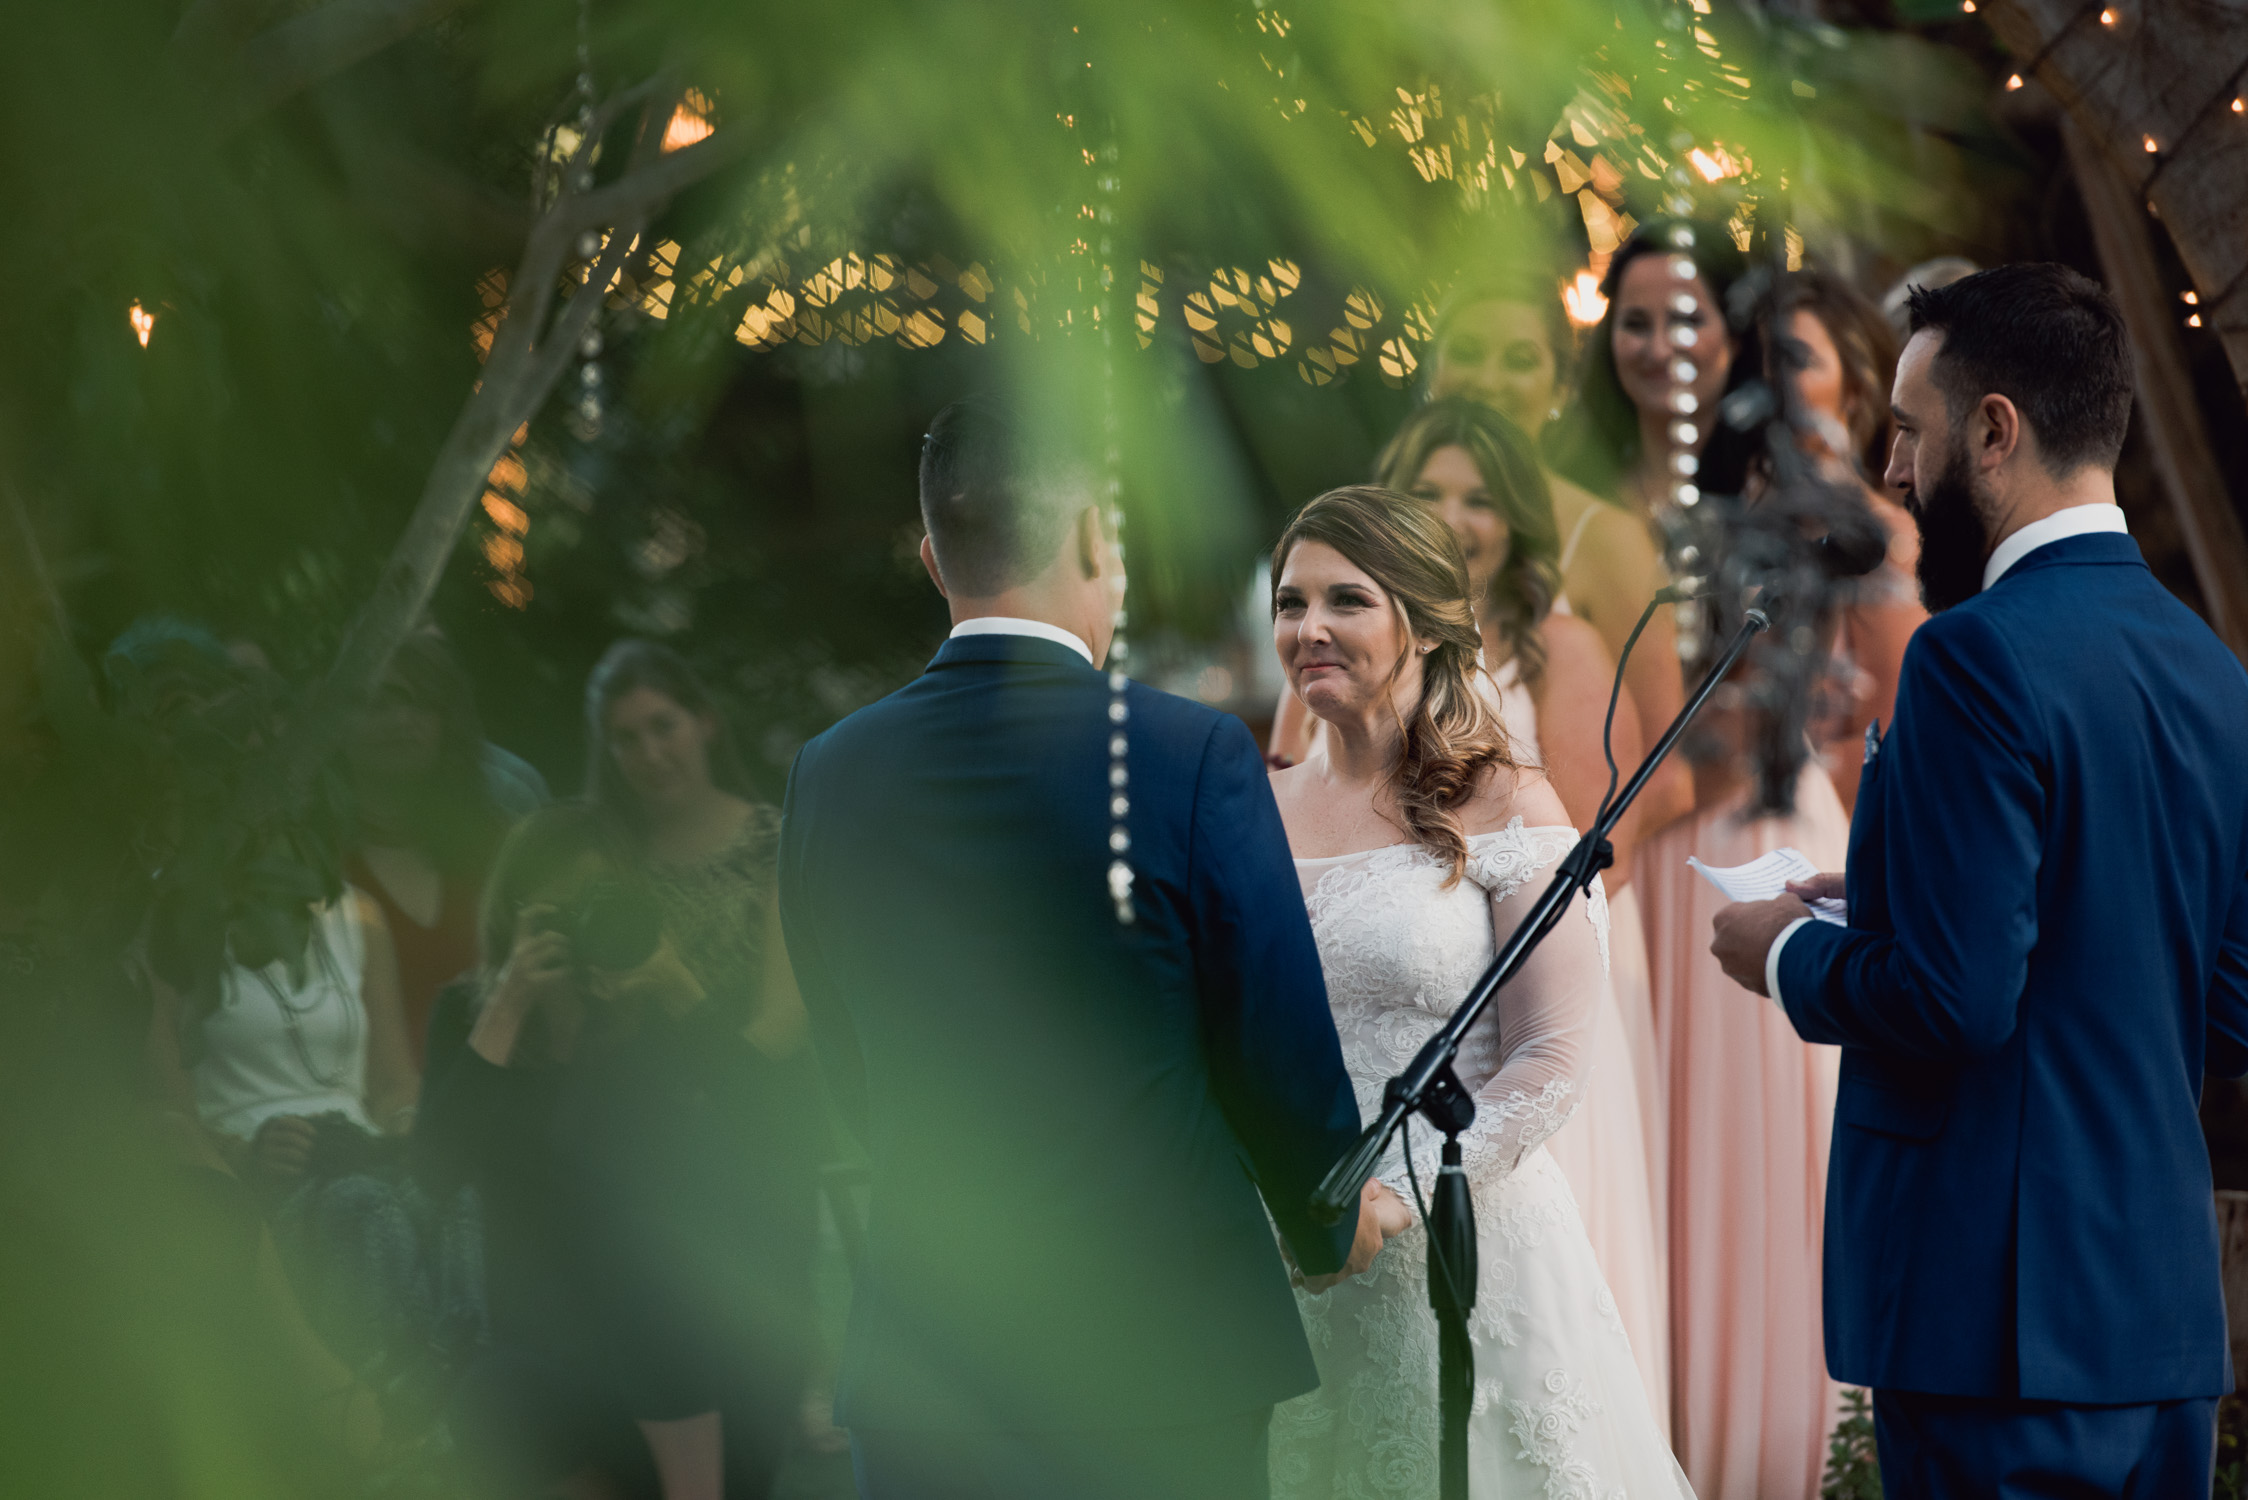 181103_Costa-wedding_427_web.jpg